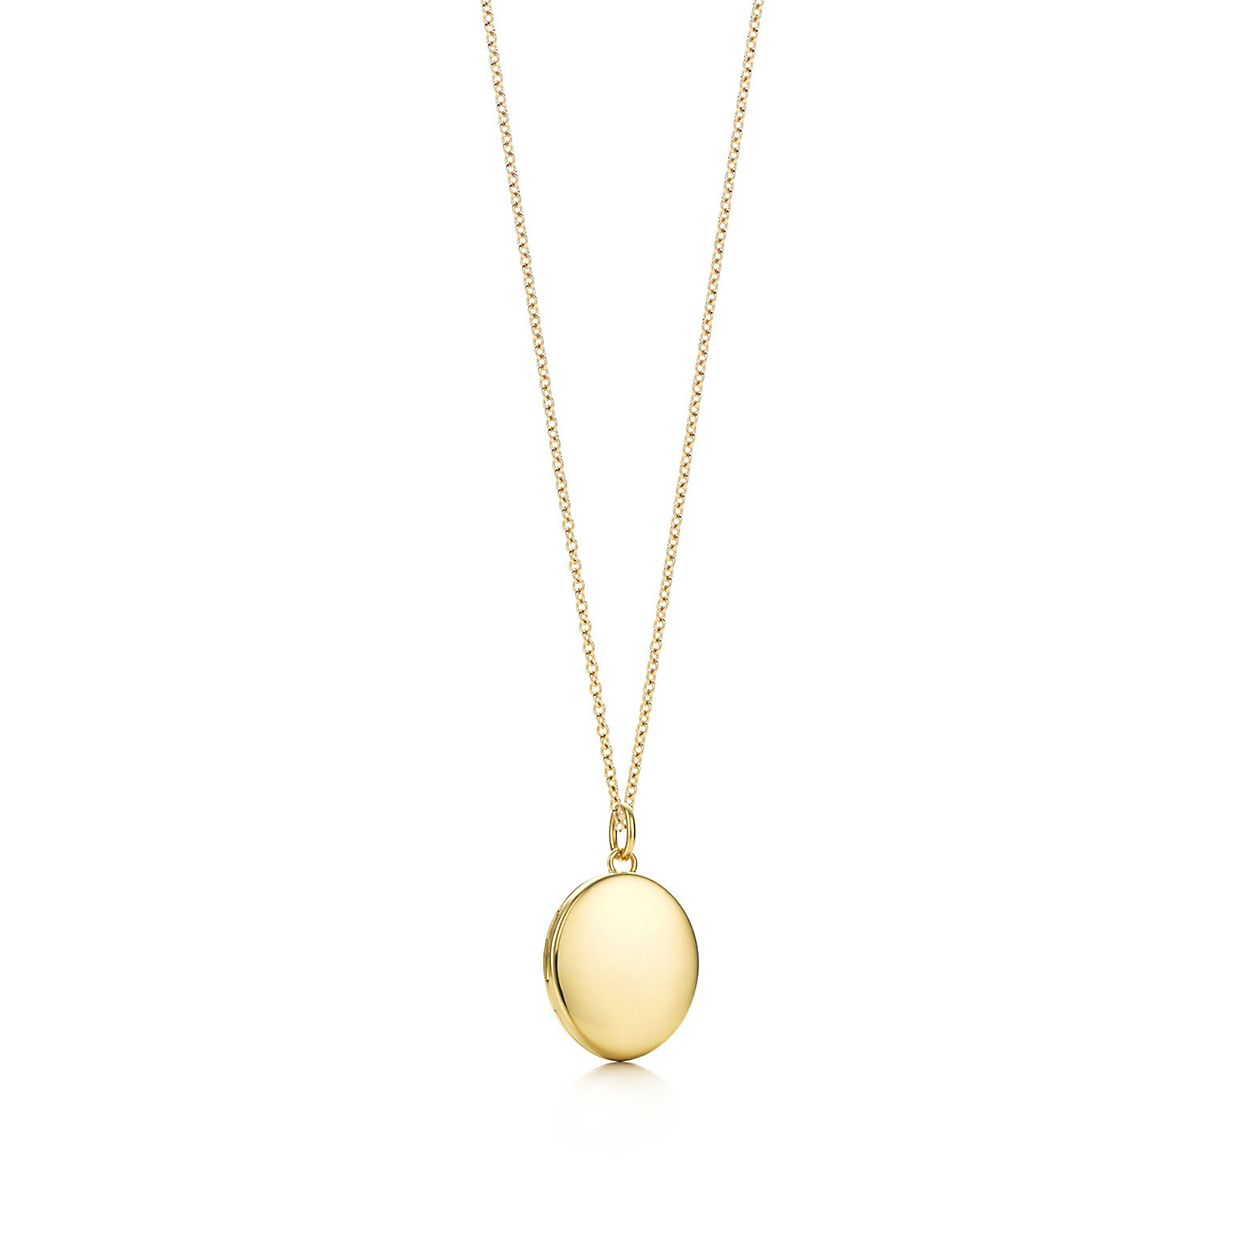 en product stockholm emma lockets necklace gold israelsson diamond